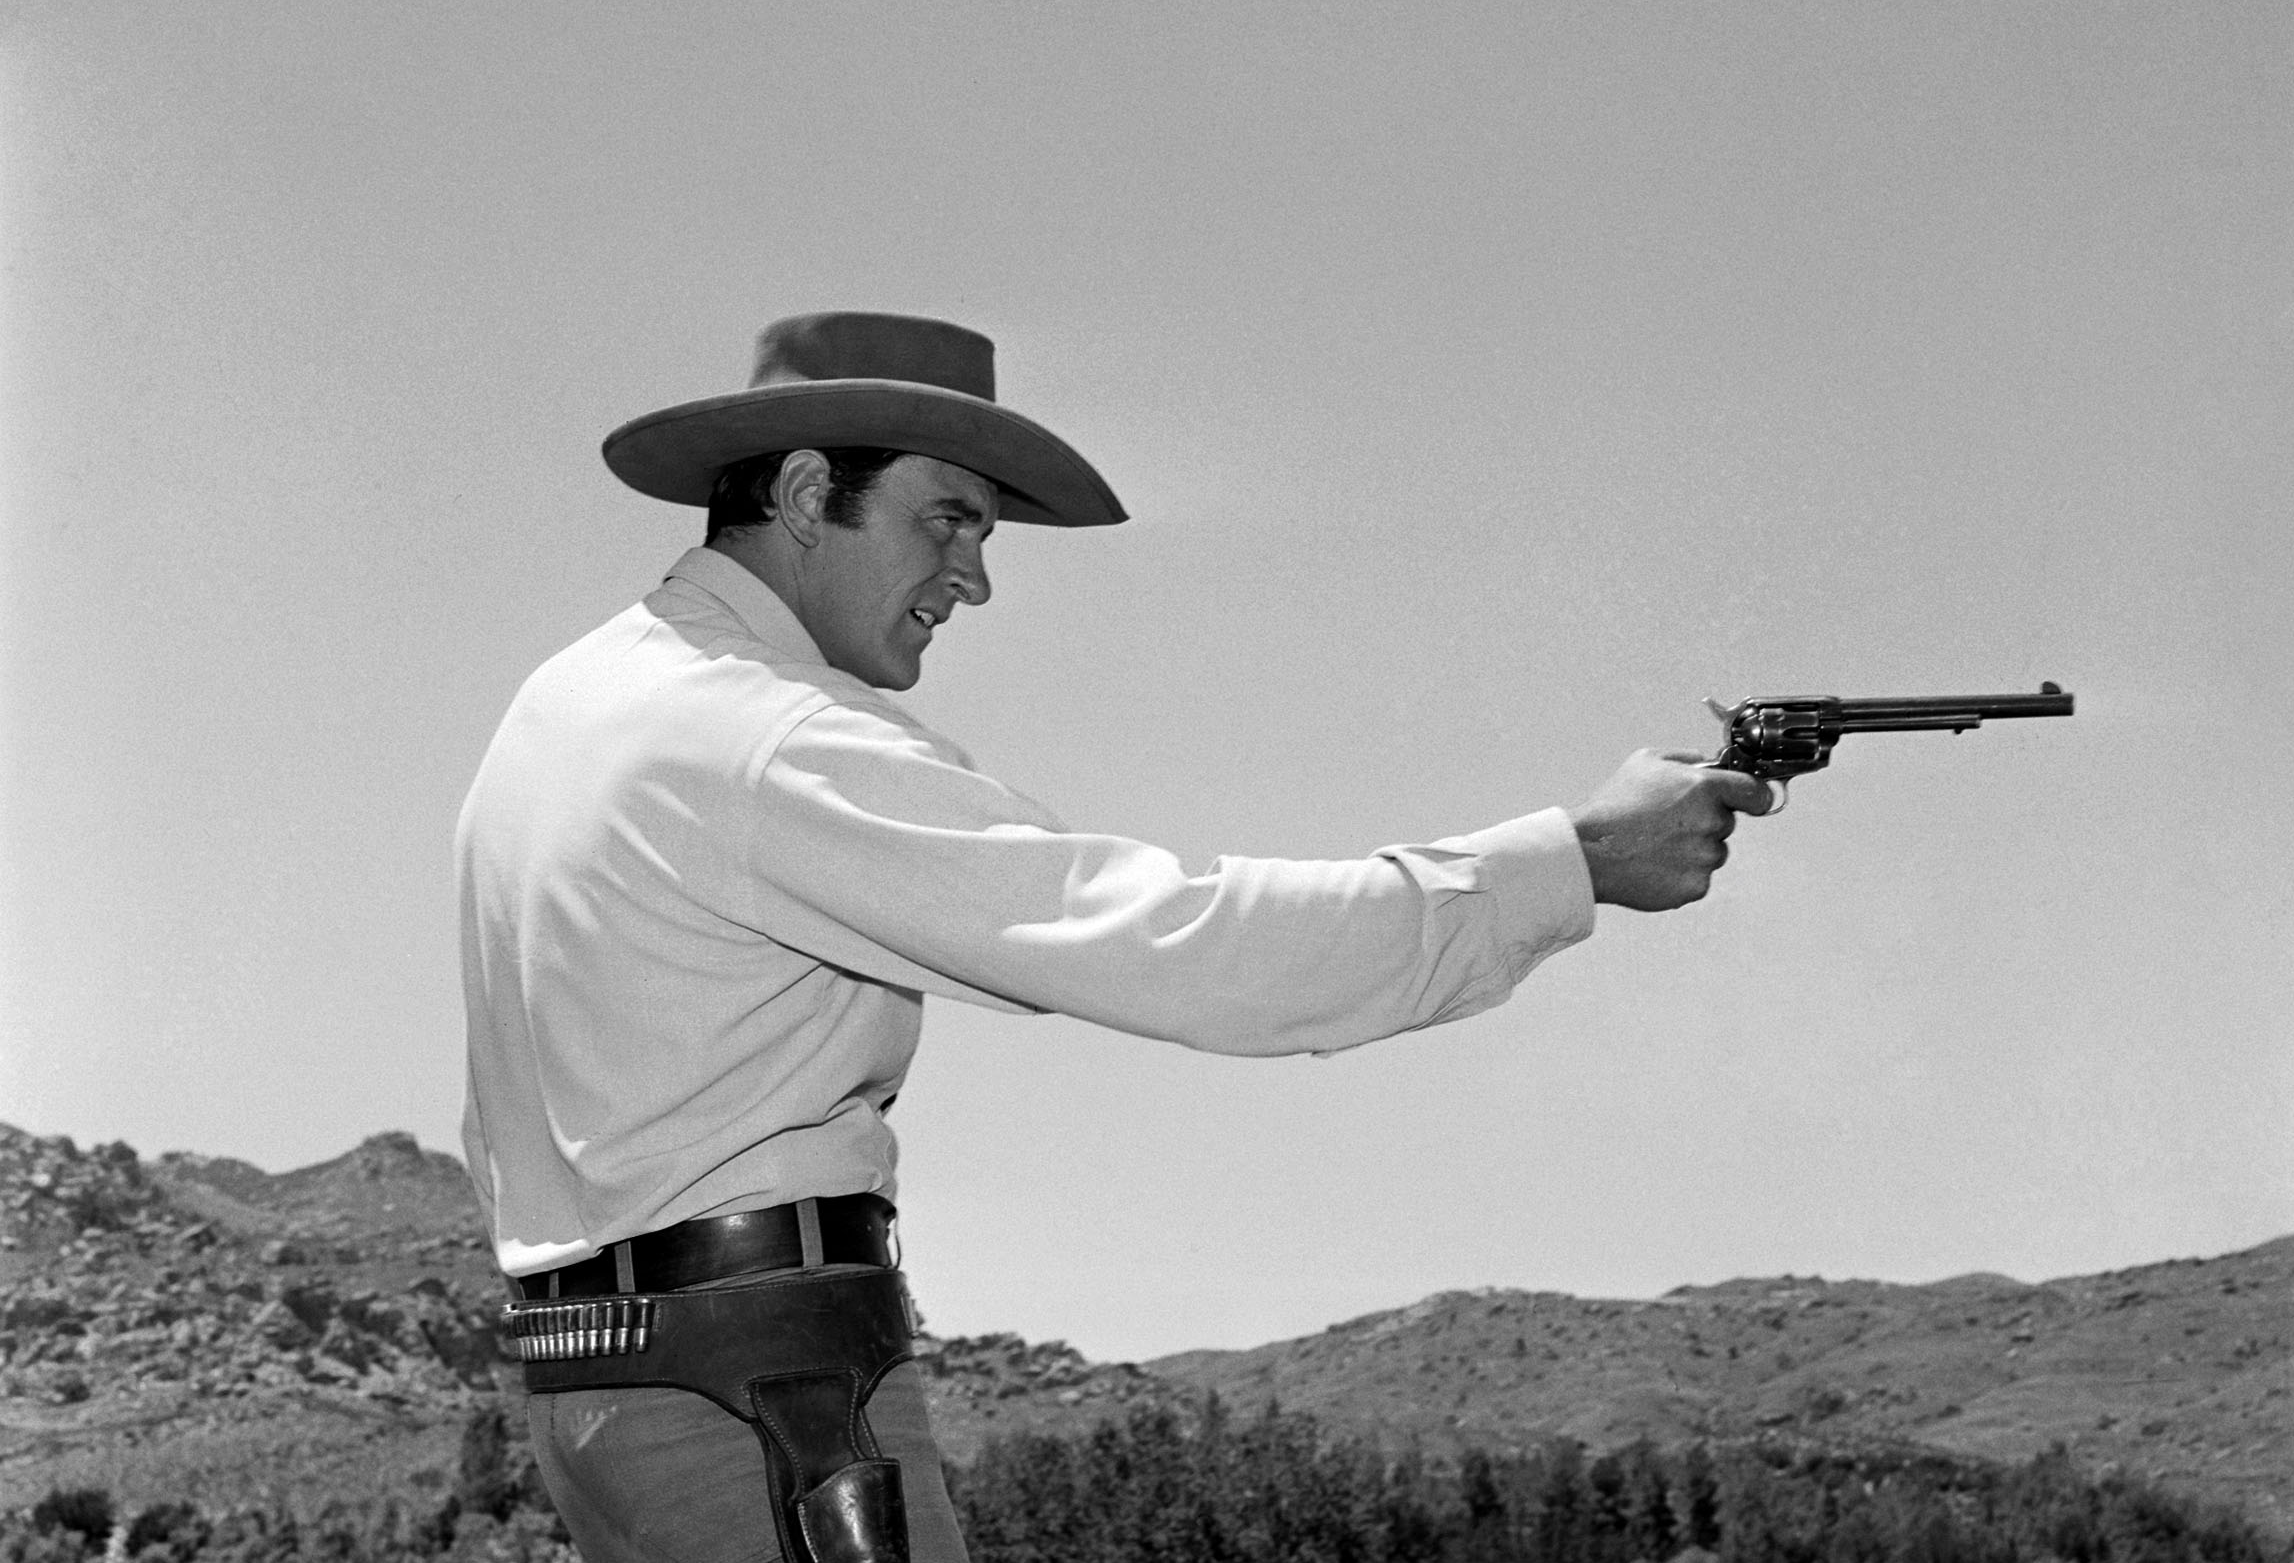 31. Rauchende Colts - Matt Dillon (James Arness)